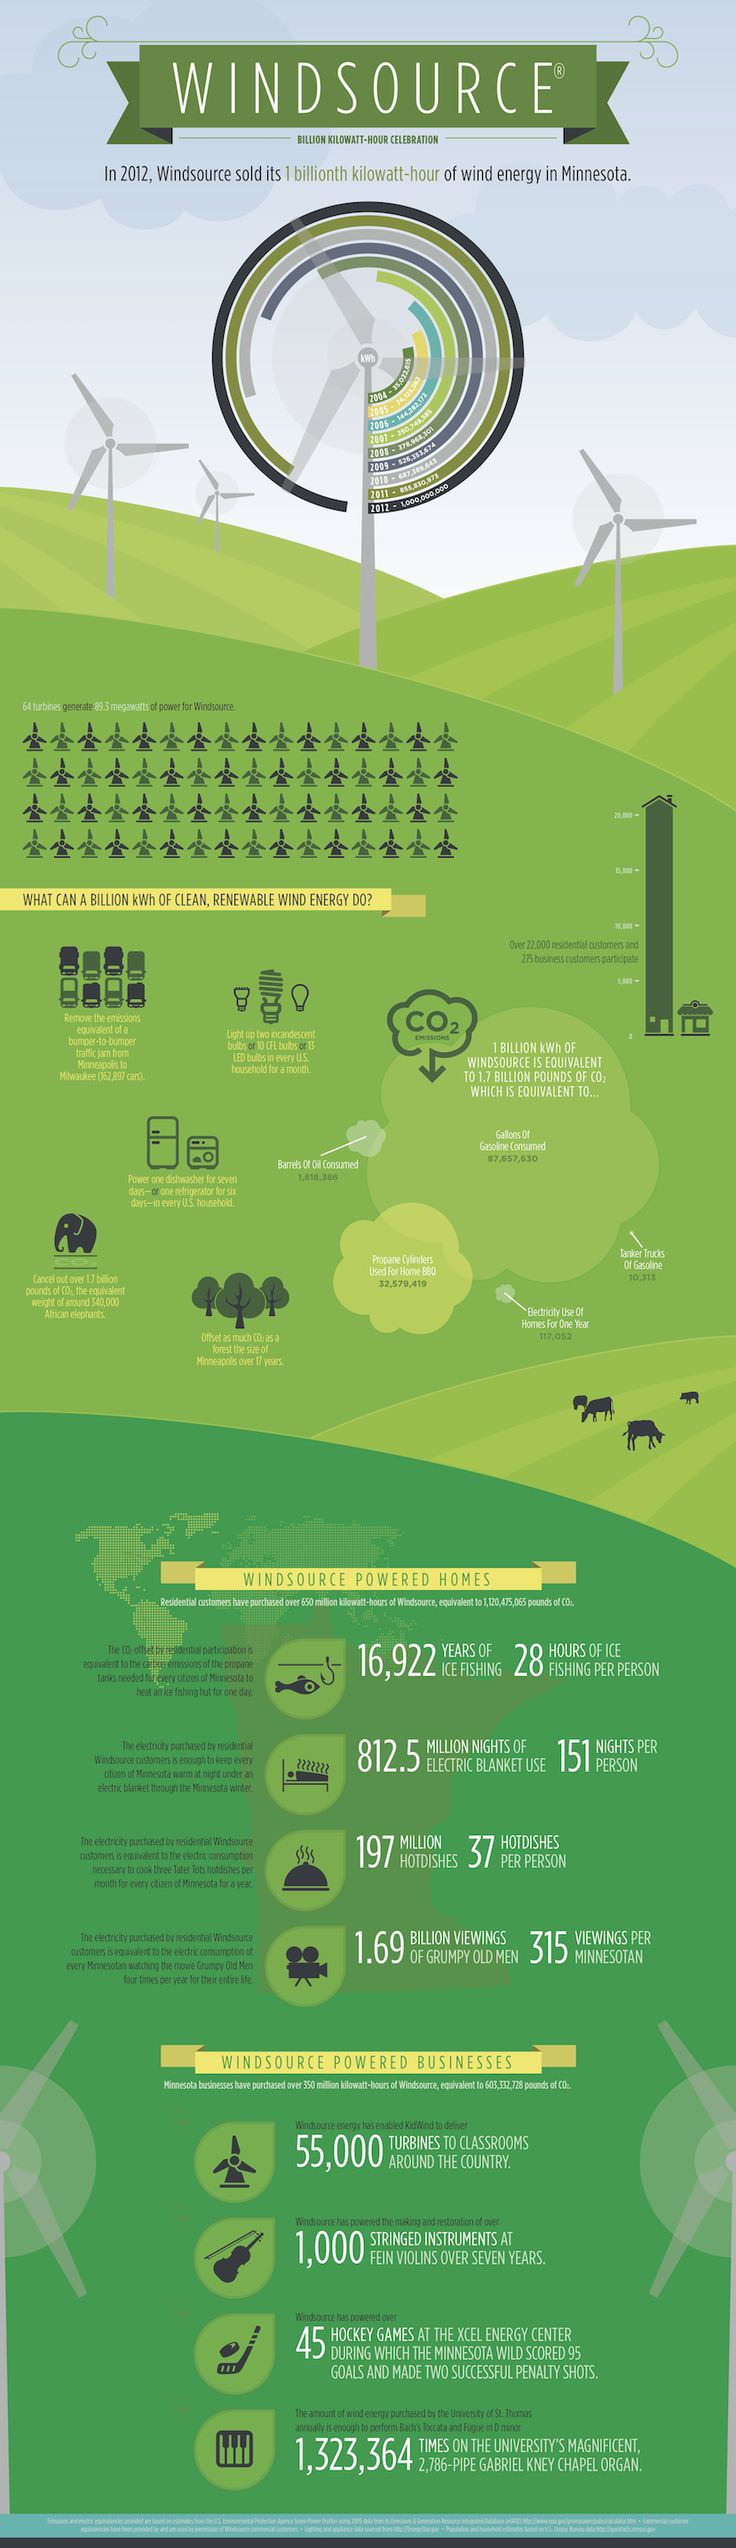 Windsource Infographic | Responsible By Nature - see the power of renewable energy